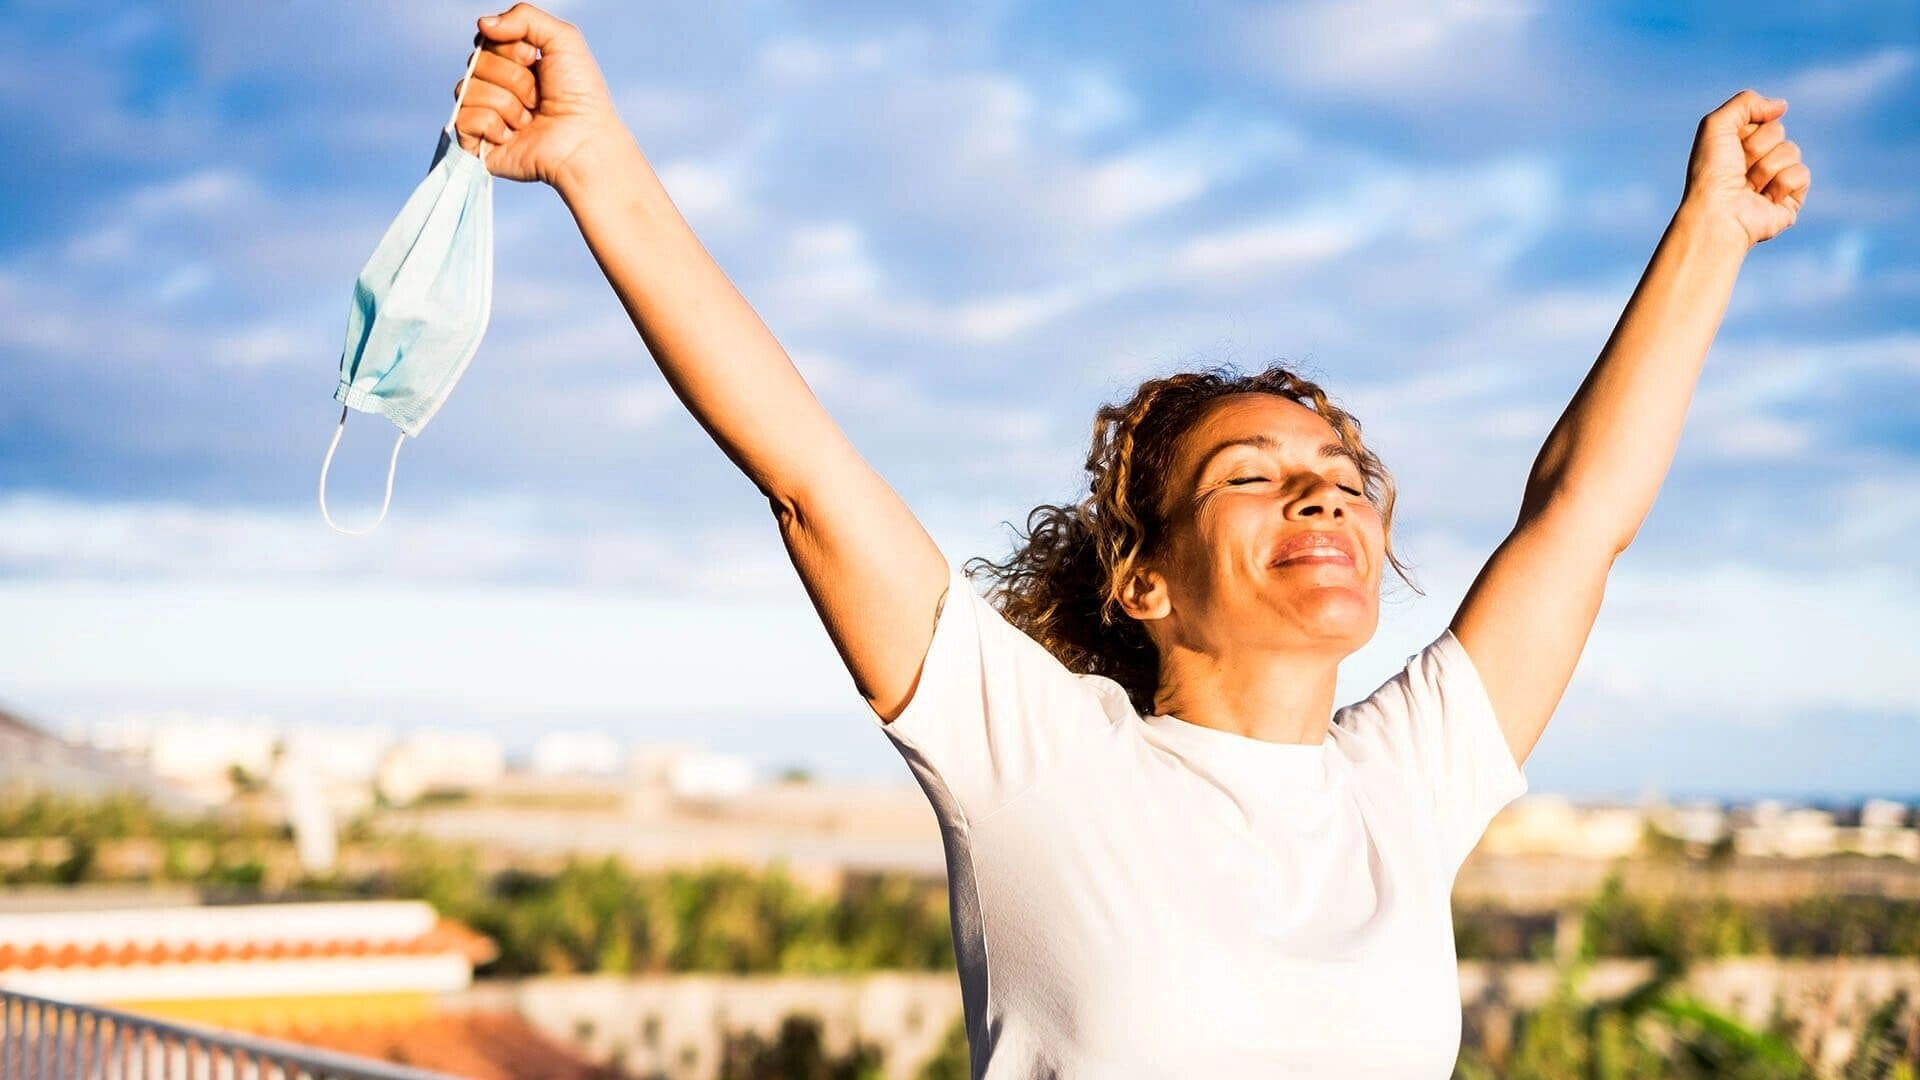 happy woman with open arms raised to the sky with mouth cover in hand